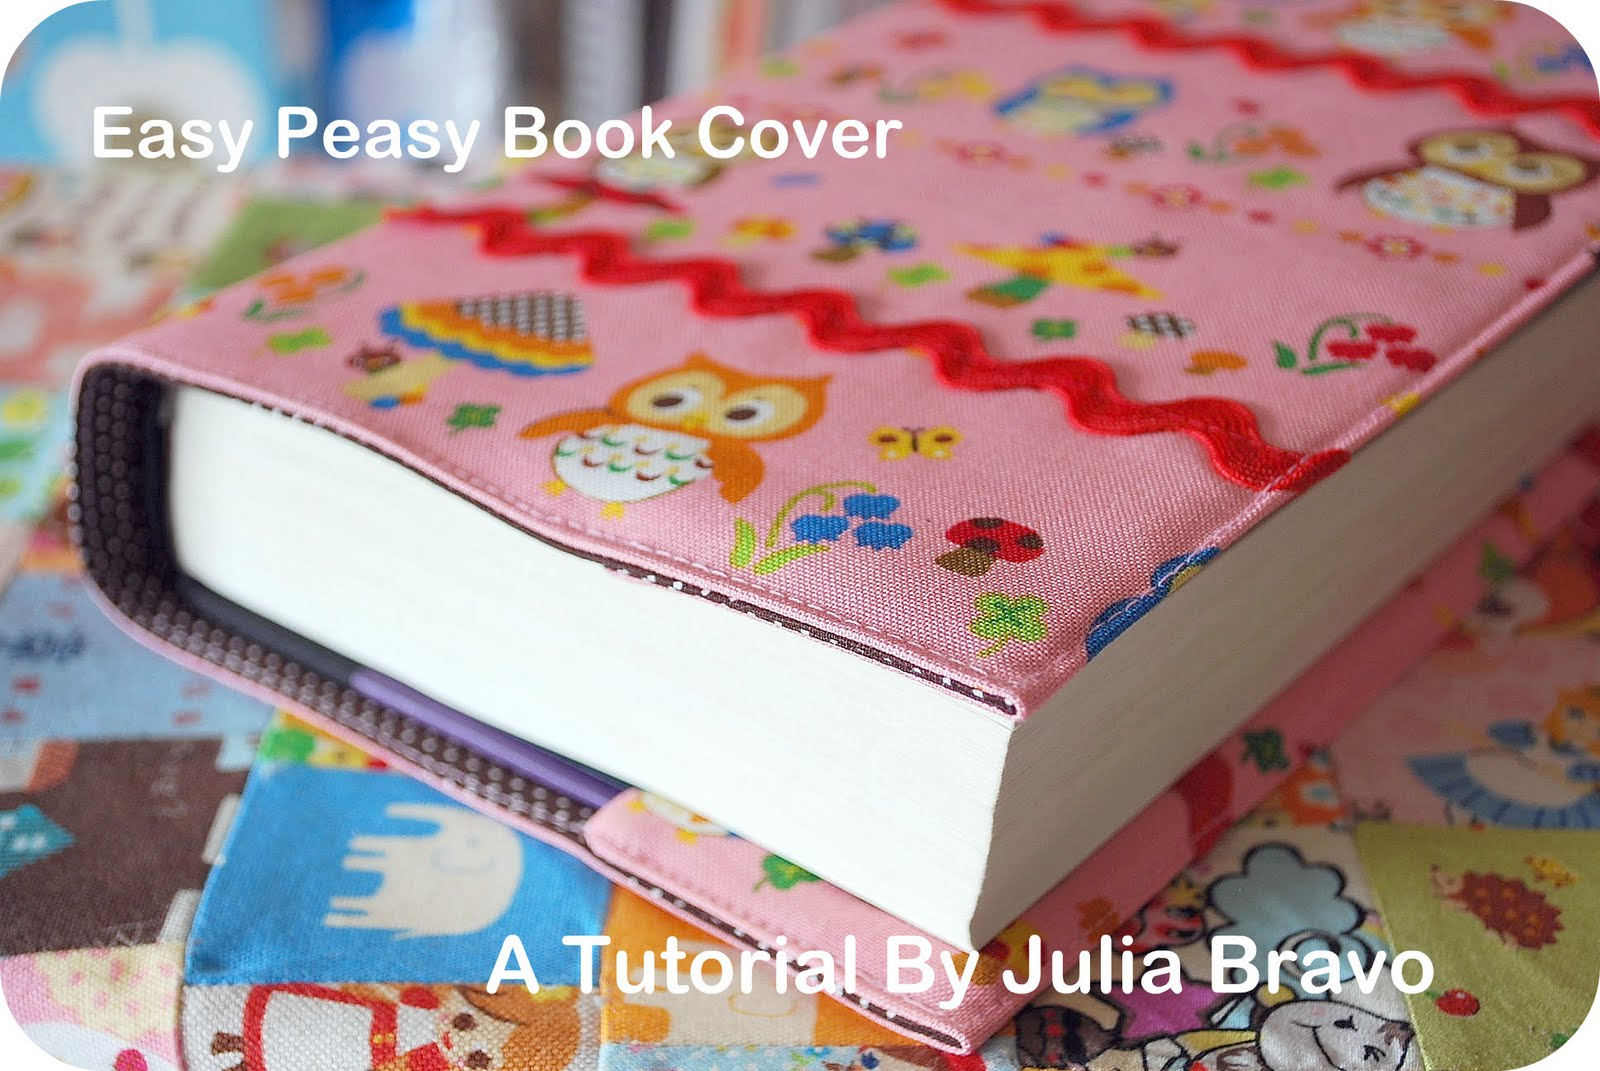 Fabric Book Cover Material ~ Stitches book cover tutorial image heavy